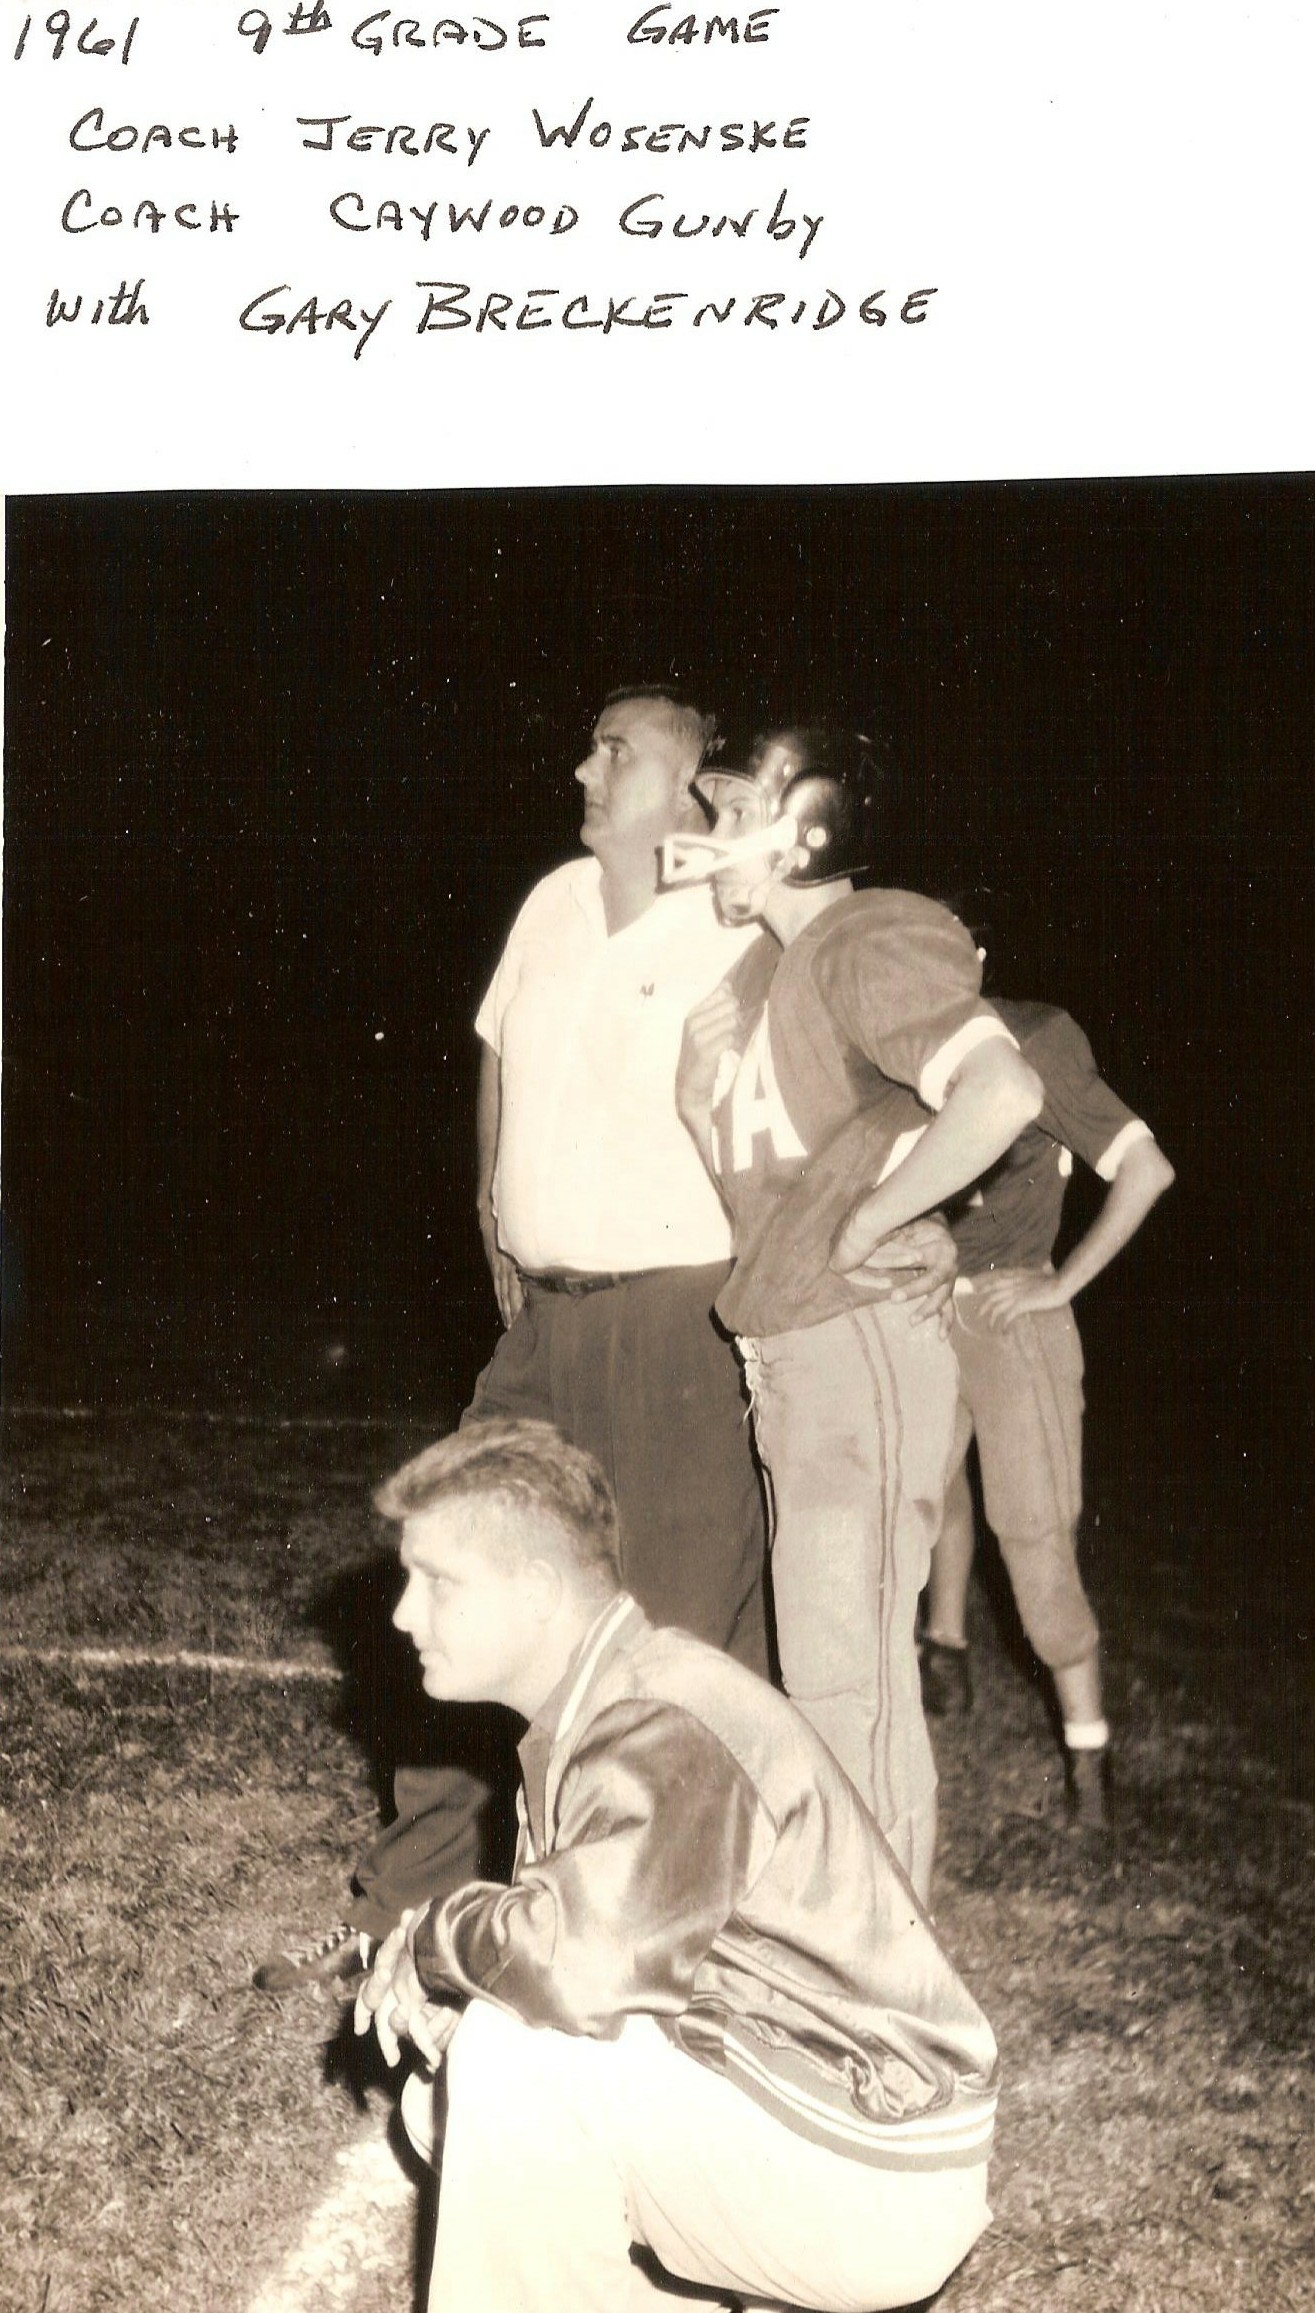 Gary with Coaches Wosenske and Gunby 1961